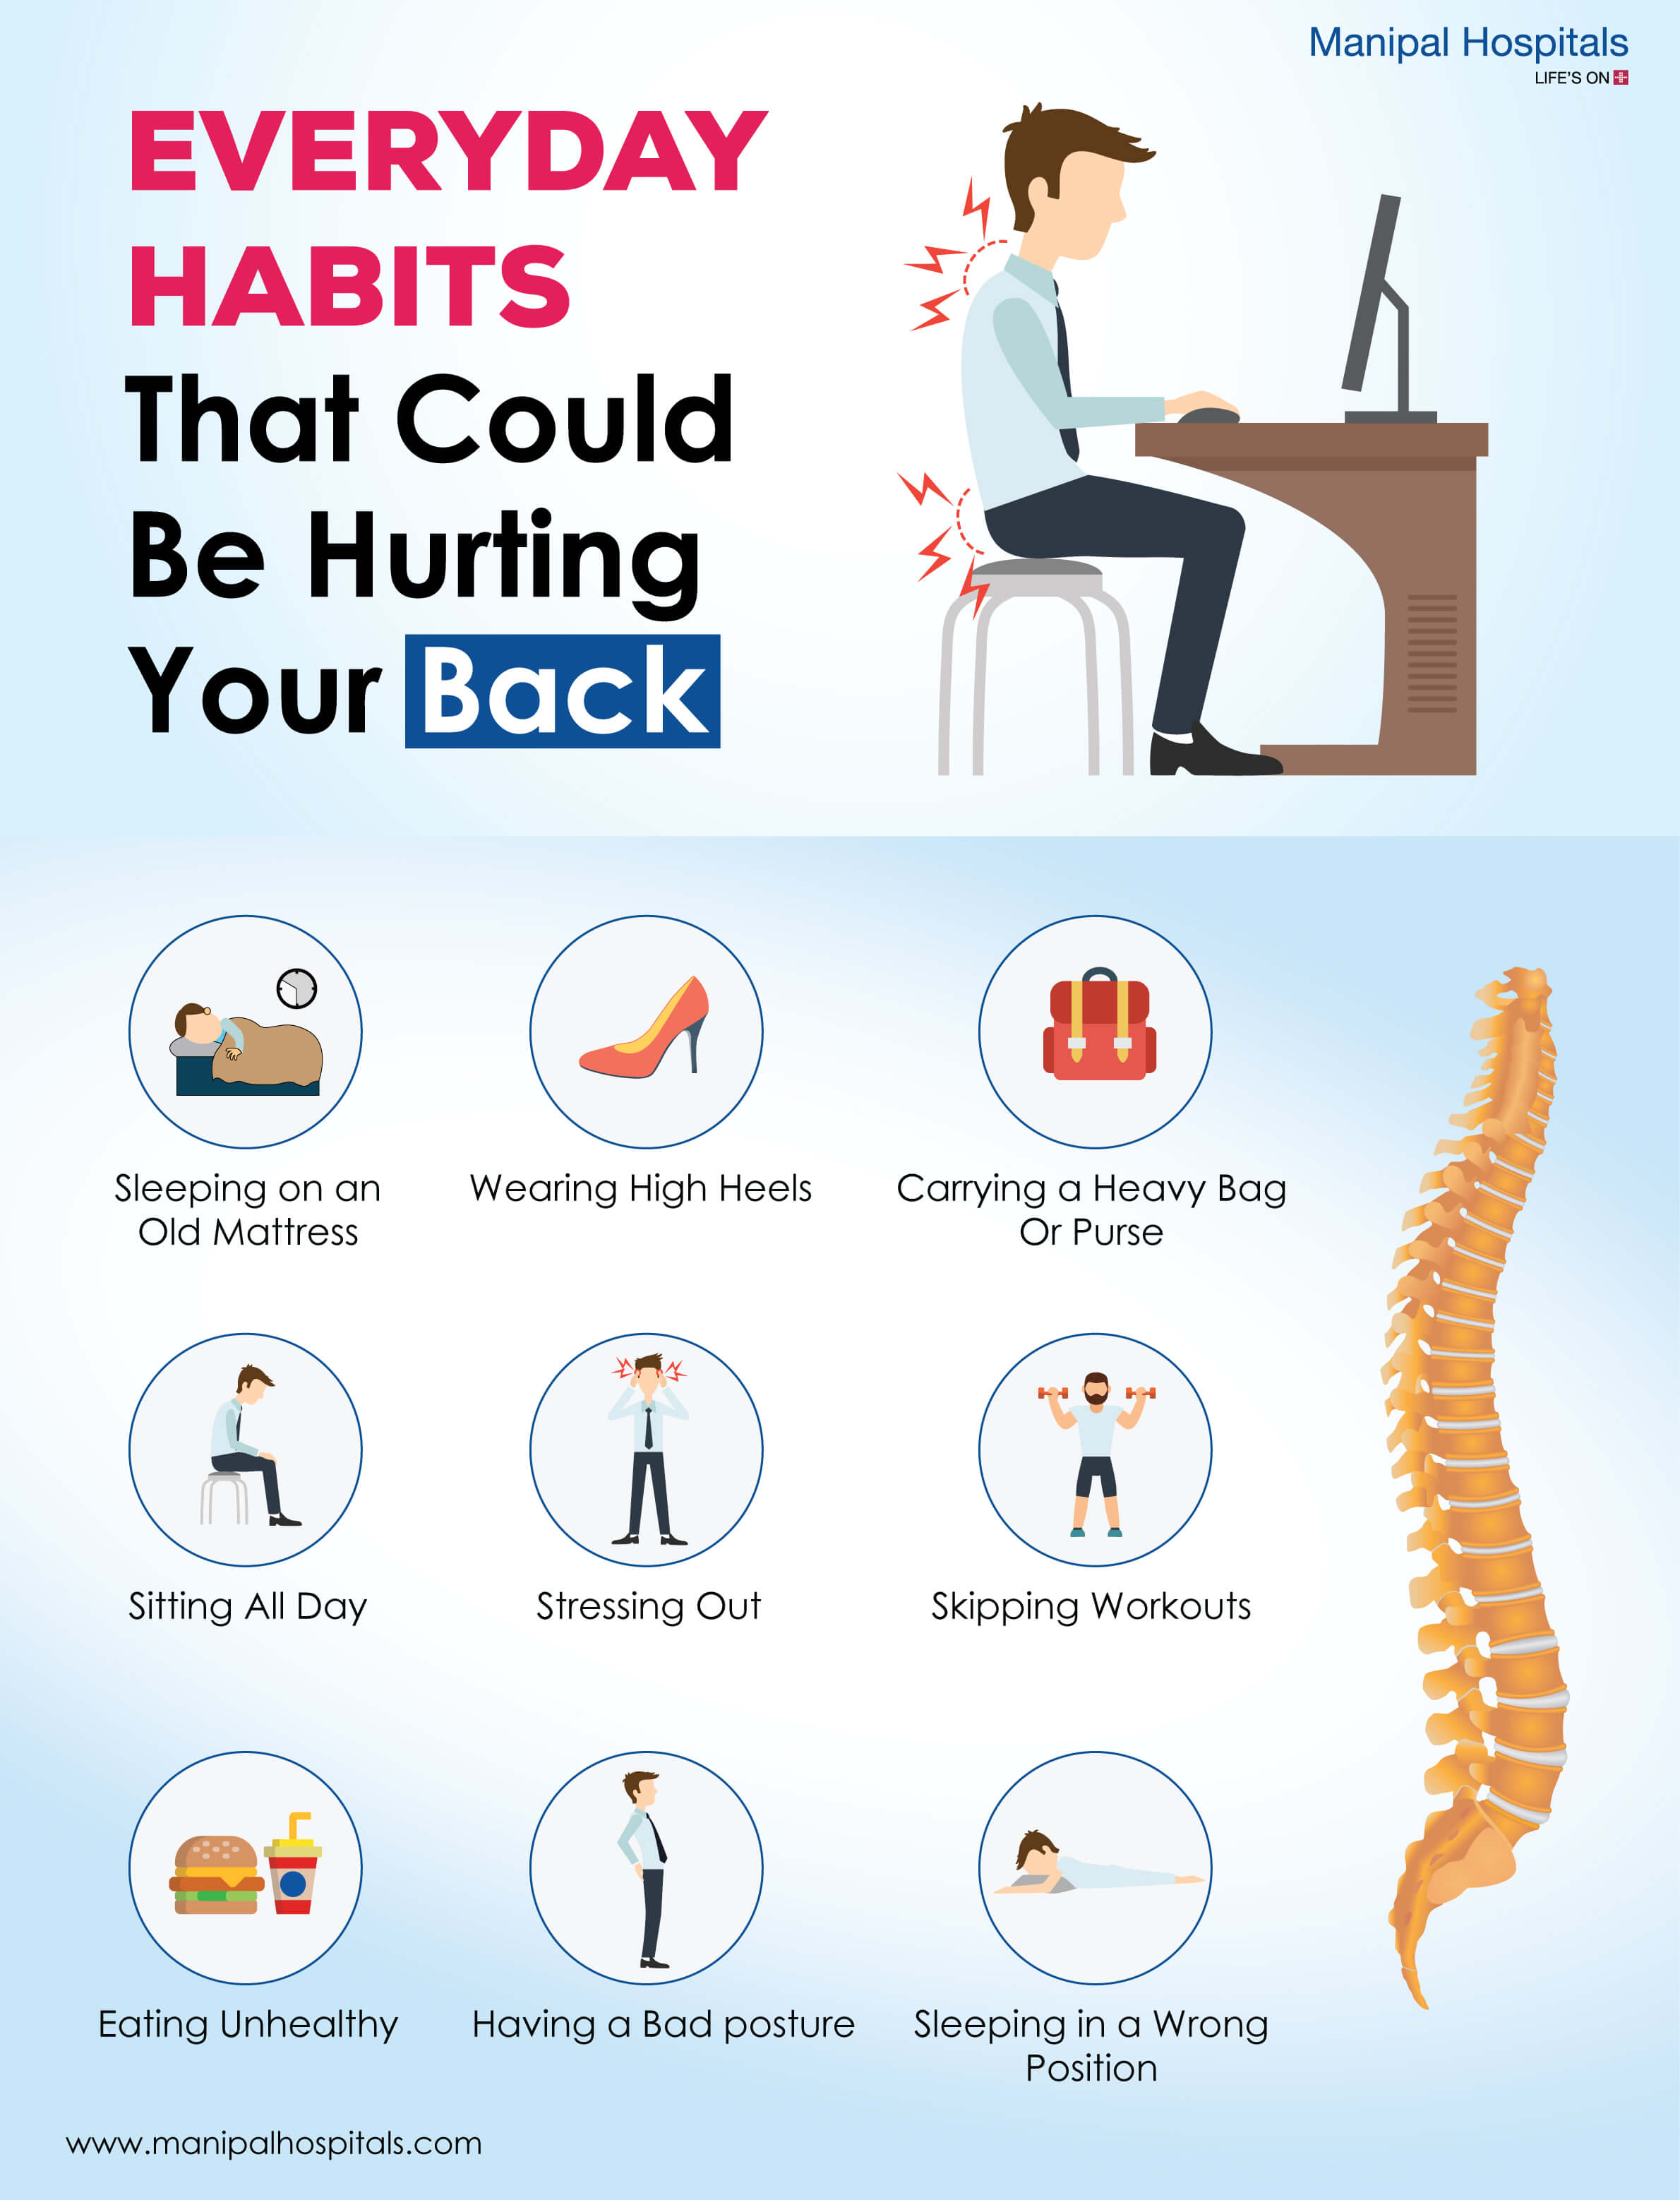 habits-hurting-your-back-infographic-plaza